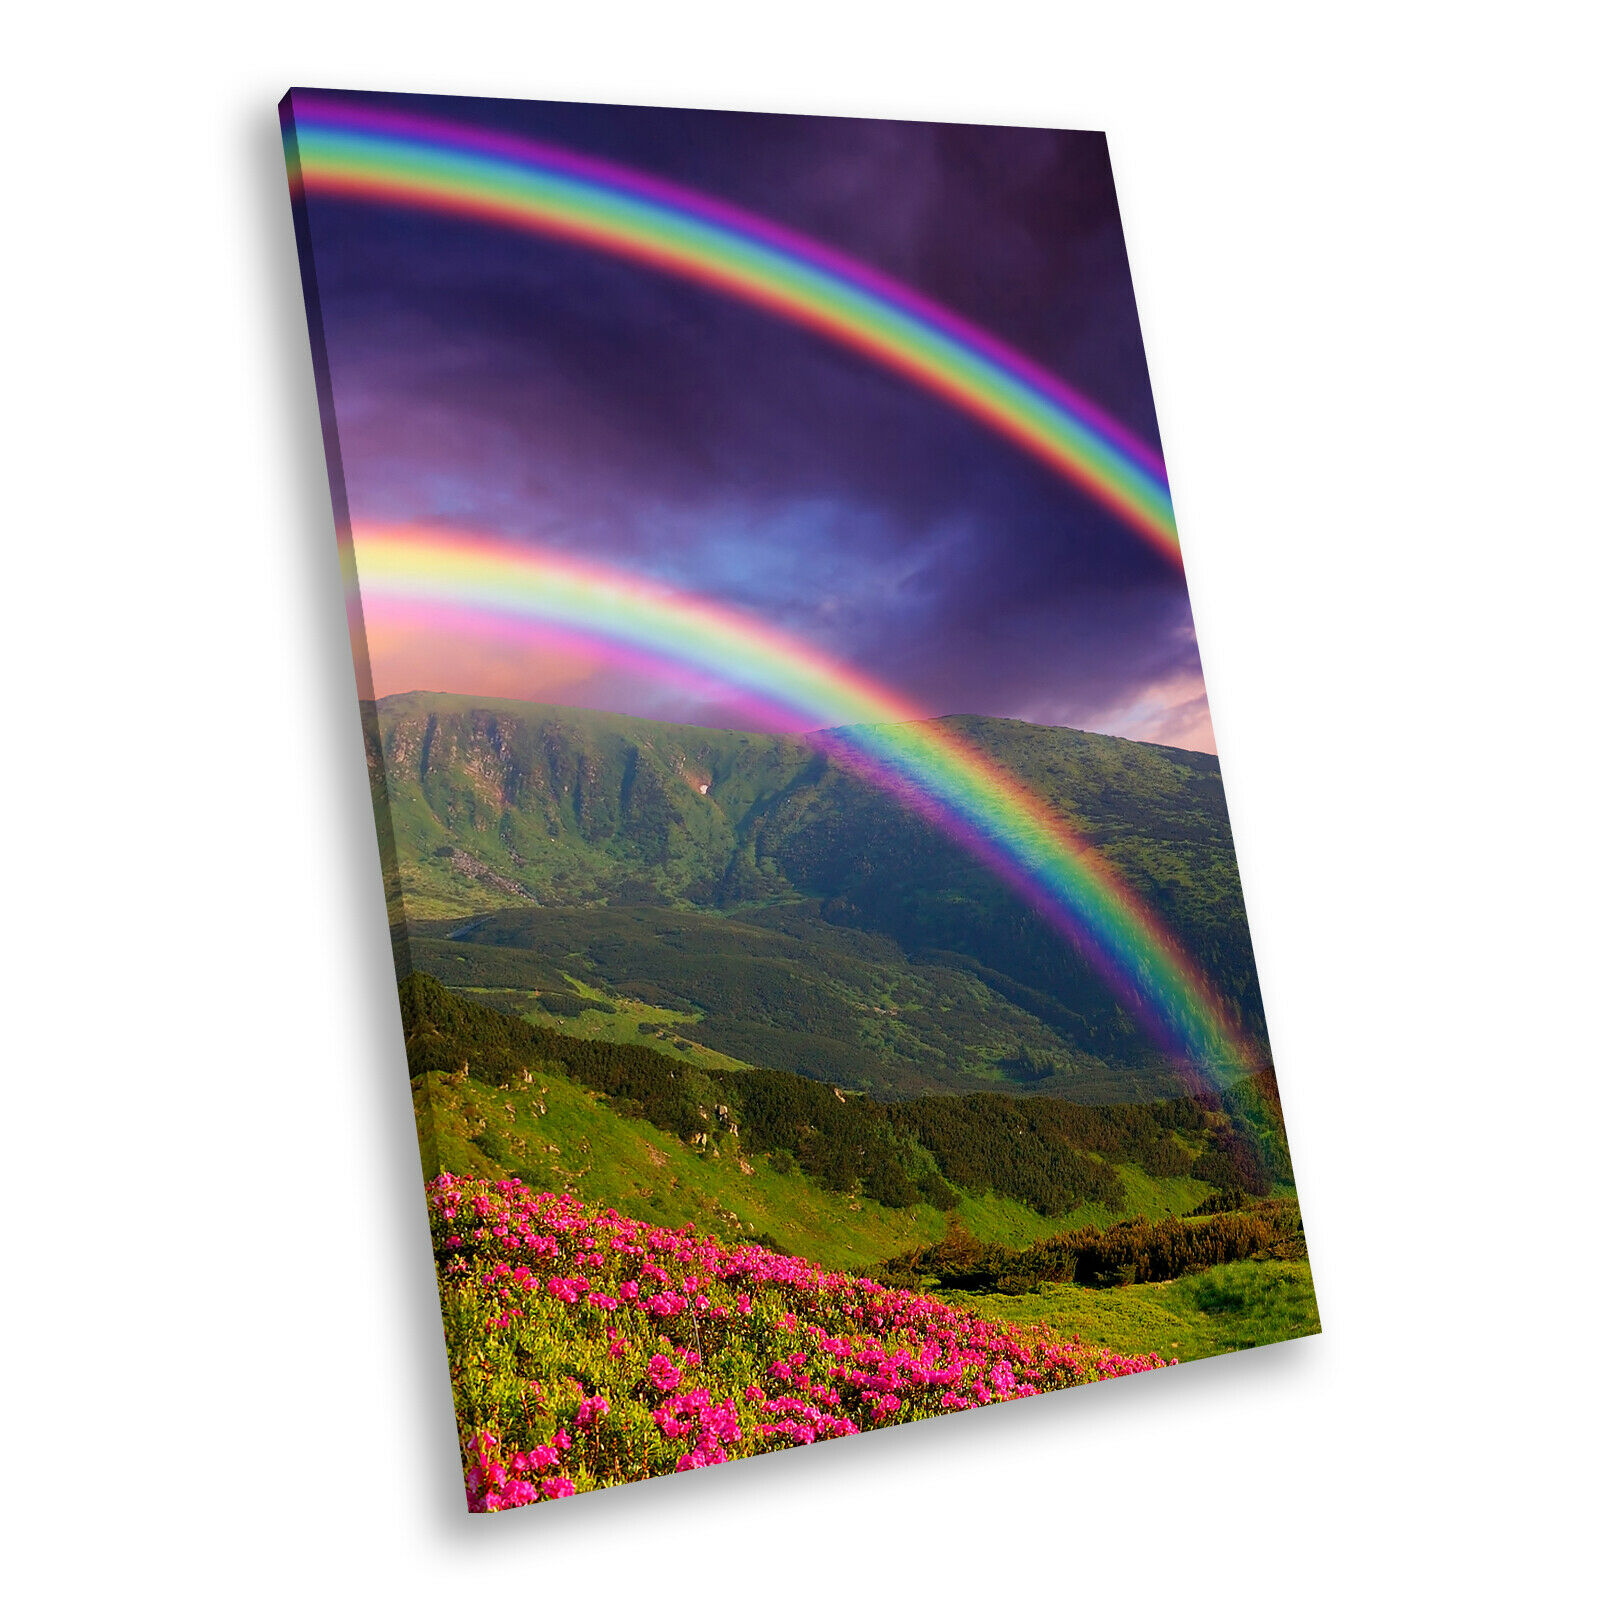 Colourful Rainbow Hill Cool Portrait Scenic Canvas Wall Art Large Picture Prints